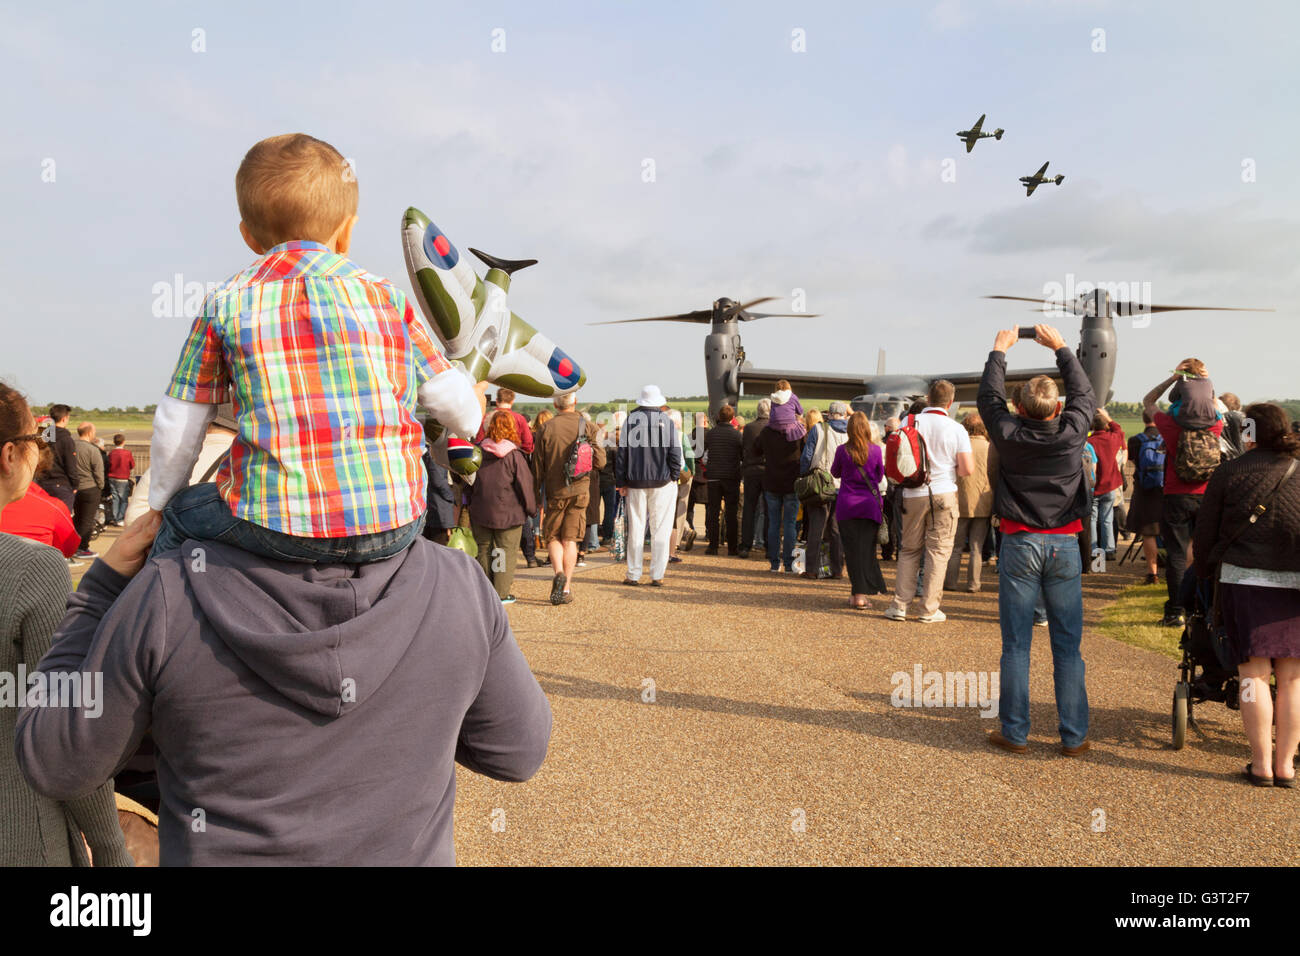 People including families and children at the Duxford American Airshow, Duxford Air Museum, Cambridgeshire UK - Stock Image